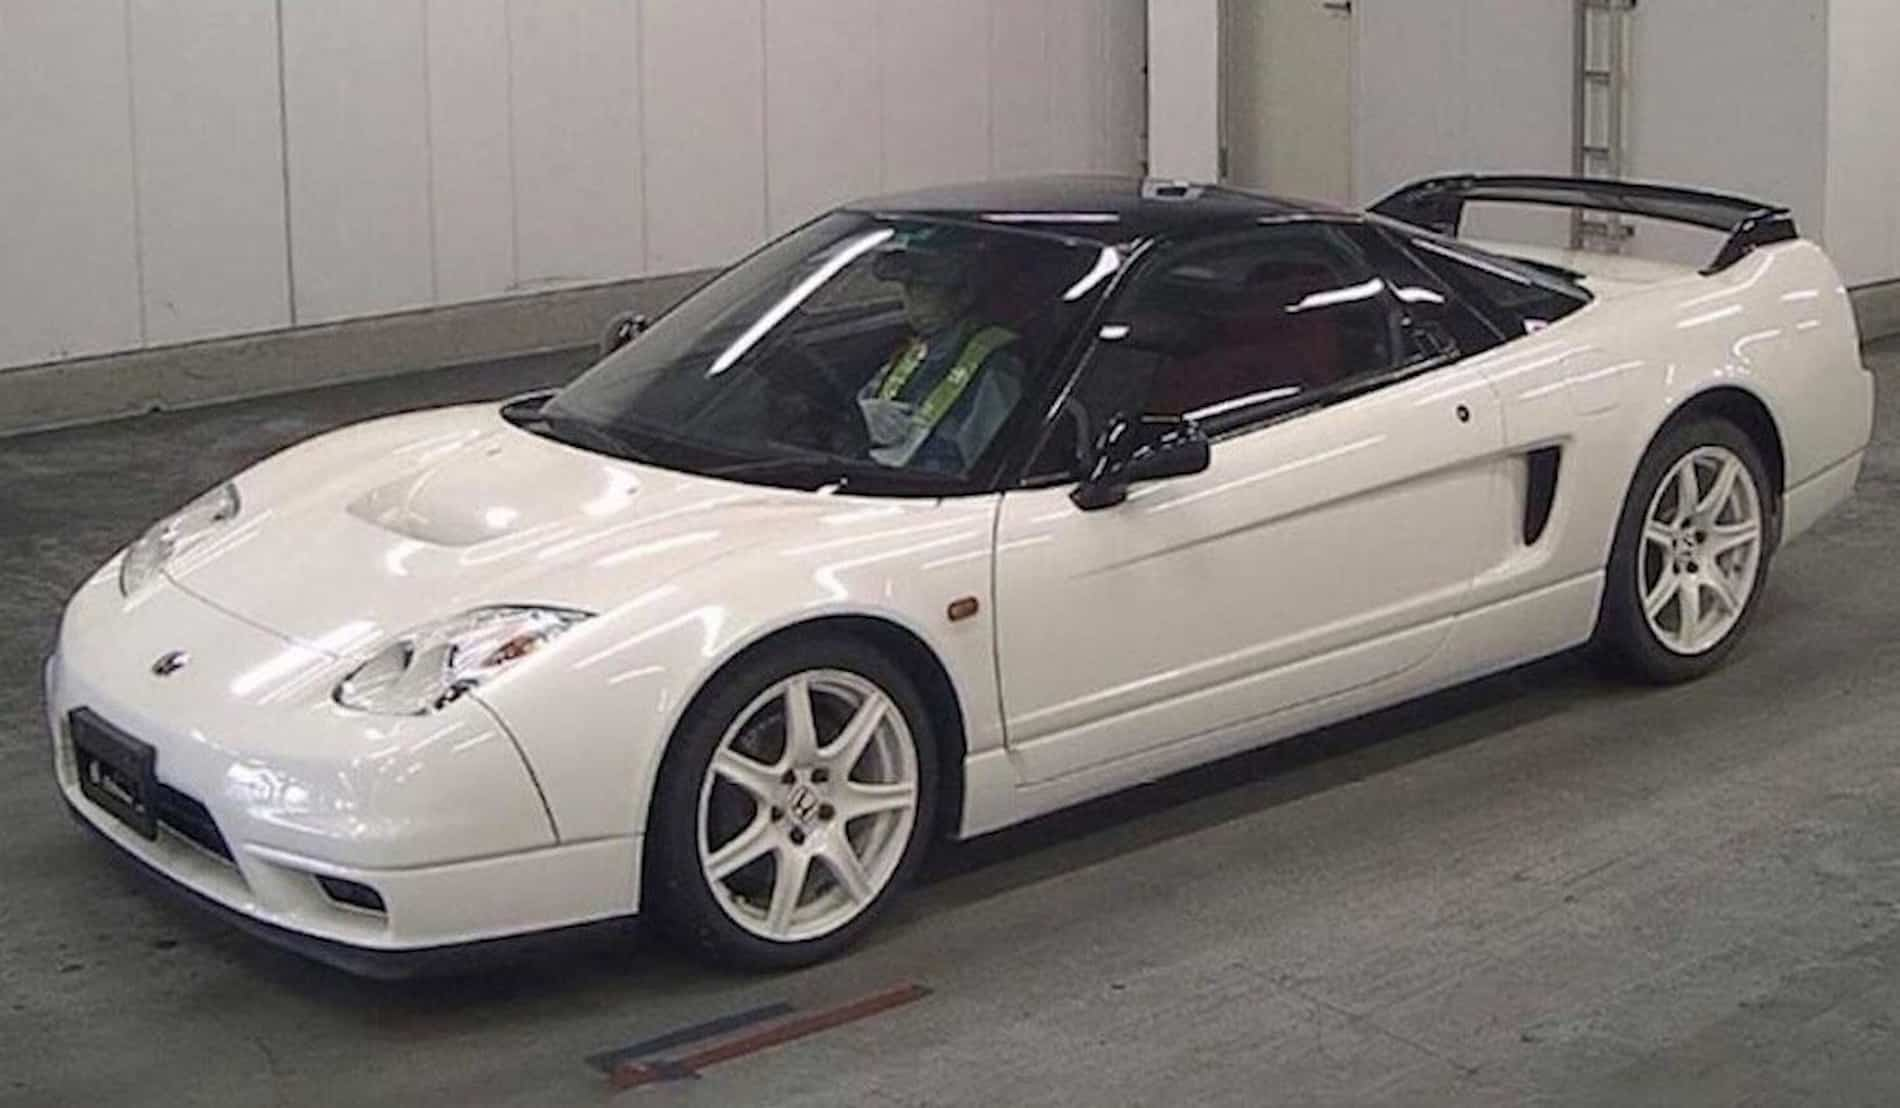 It is all but obvious now that Japanese automotive icons continue to rise in value: this one-off Honda NSX-R heading to the block in the UK this weekend has a starting price equivalent to U.S. $408,000.